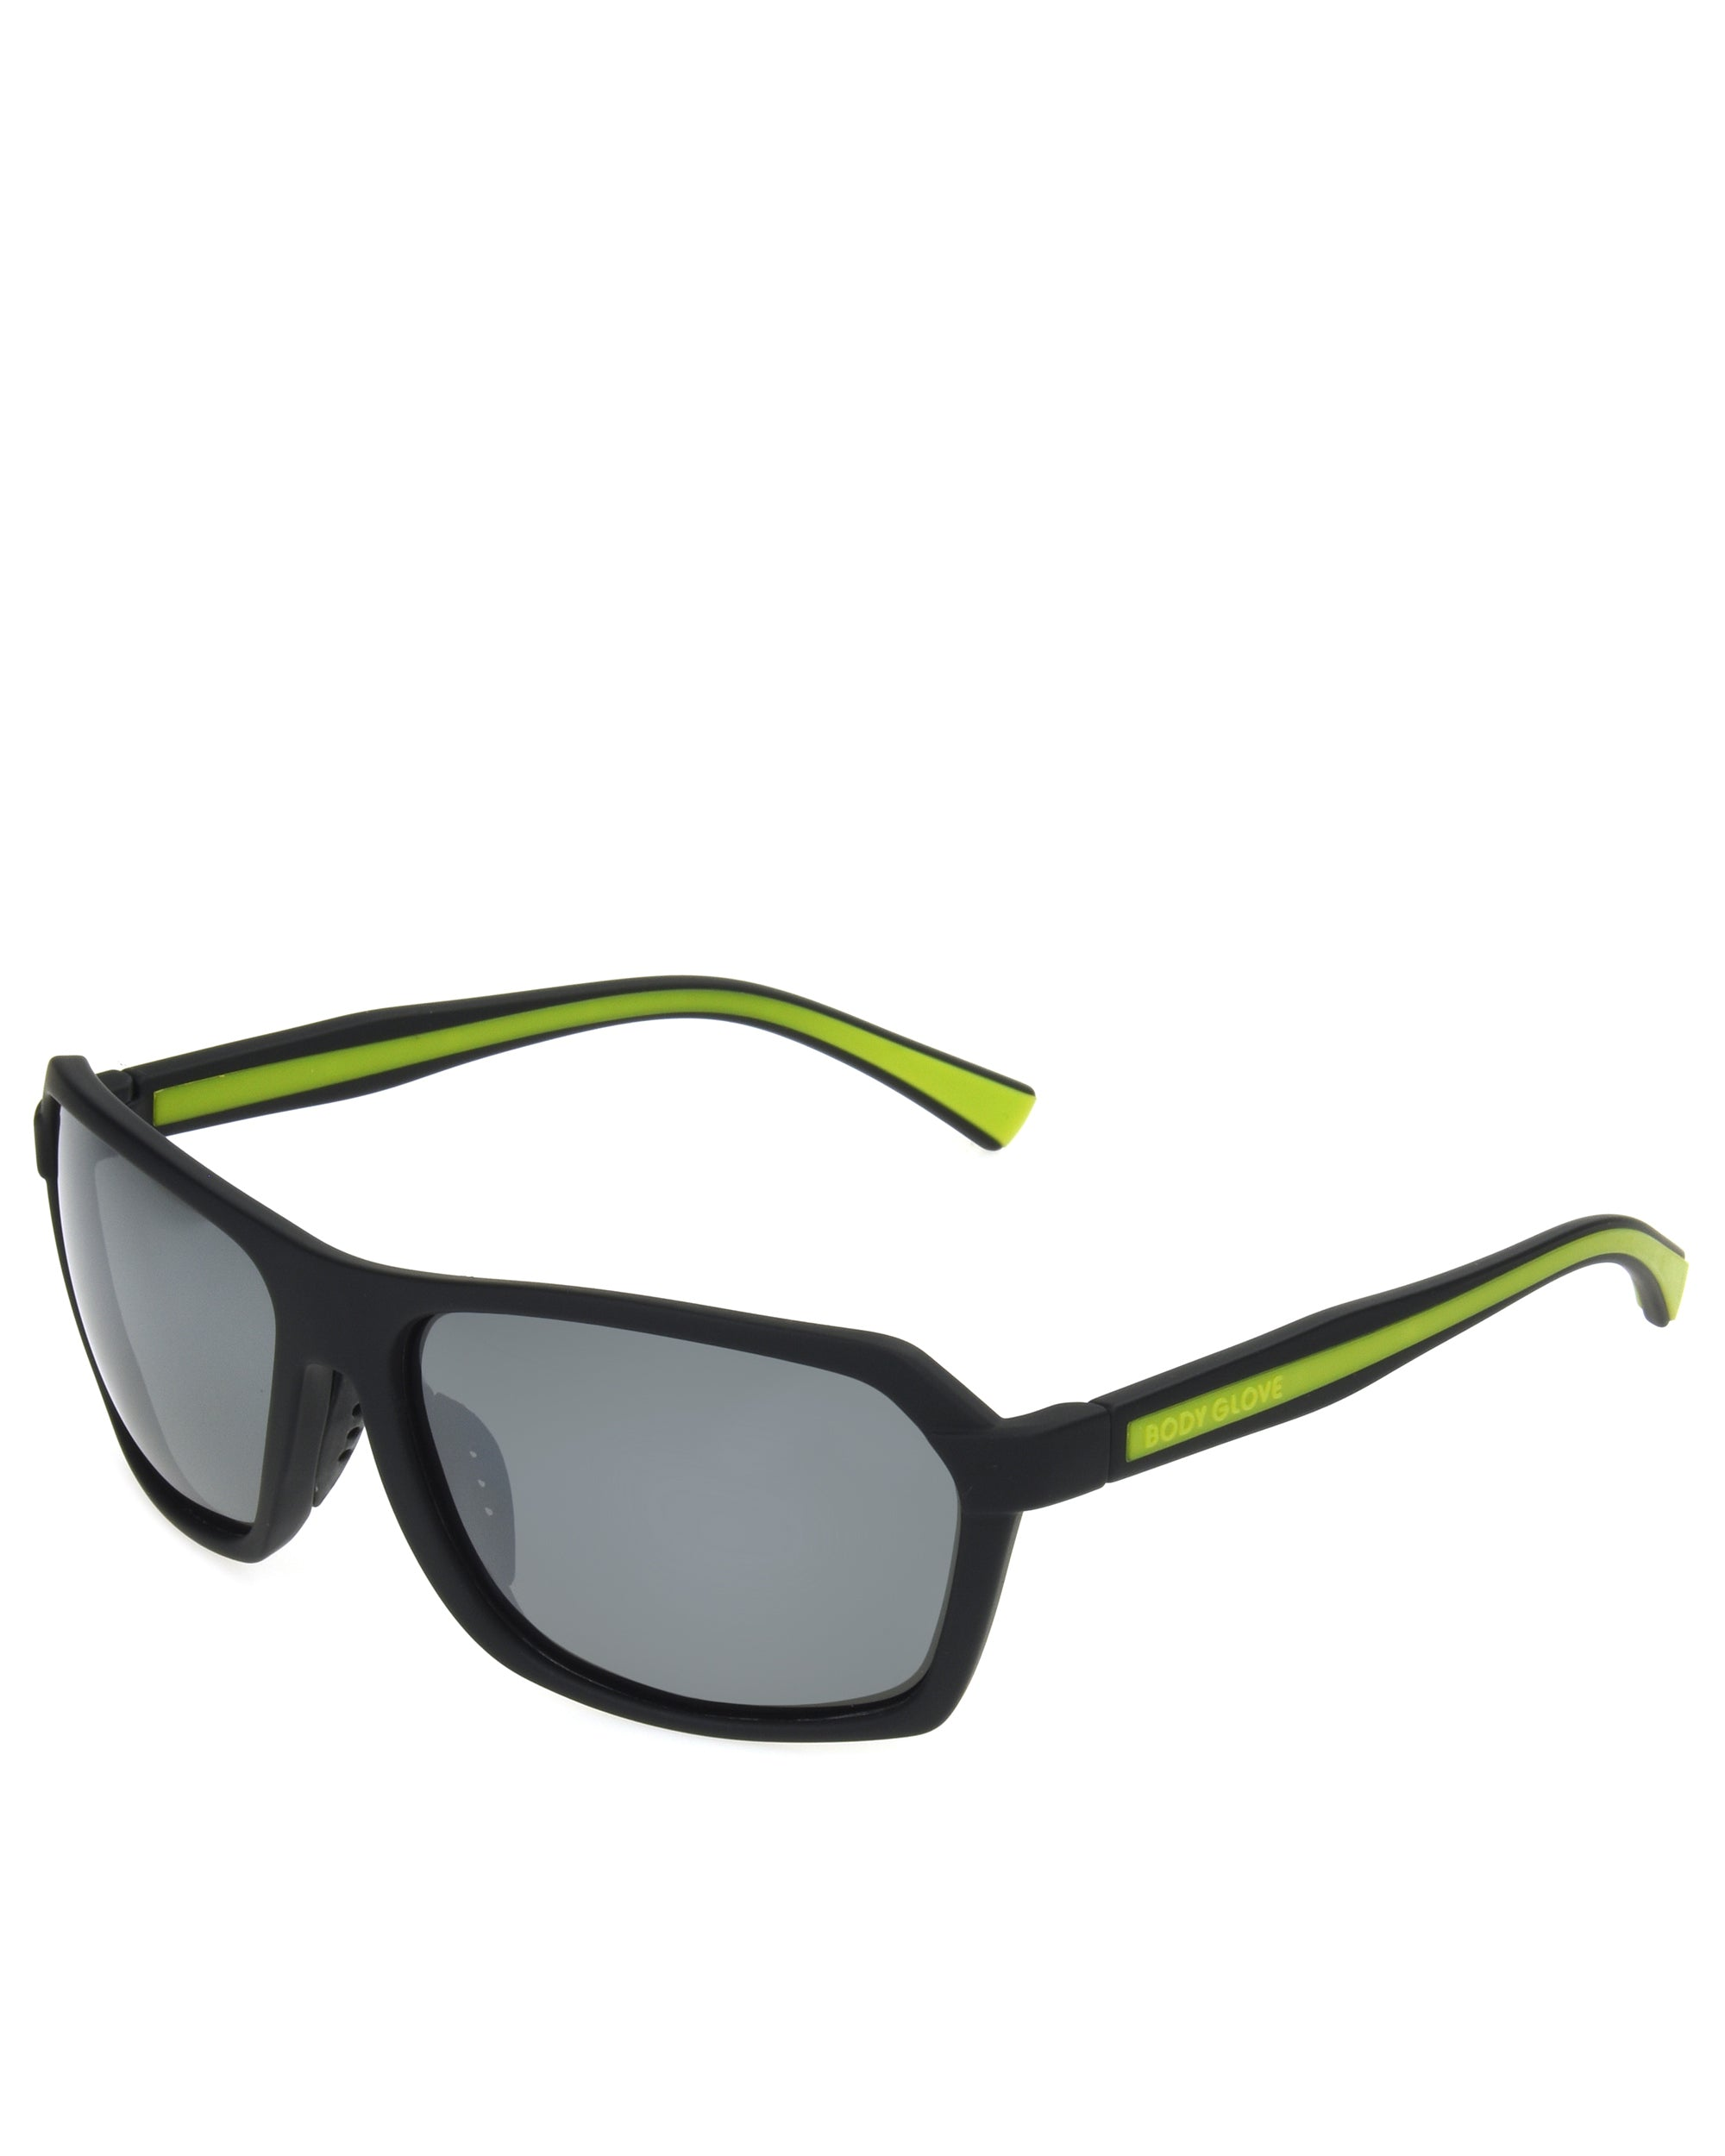 Men's Vapor 1901 Polarized Sunglasses - Black